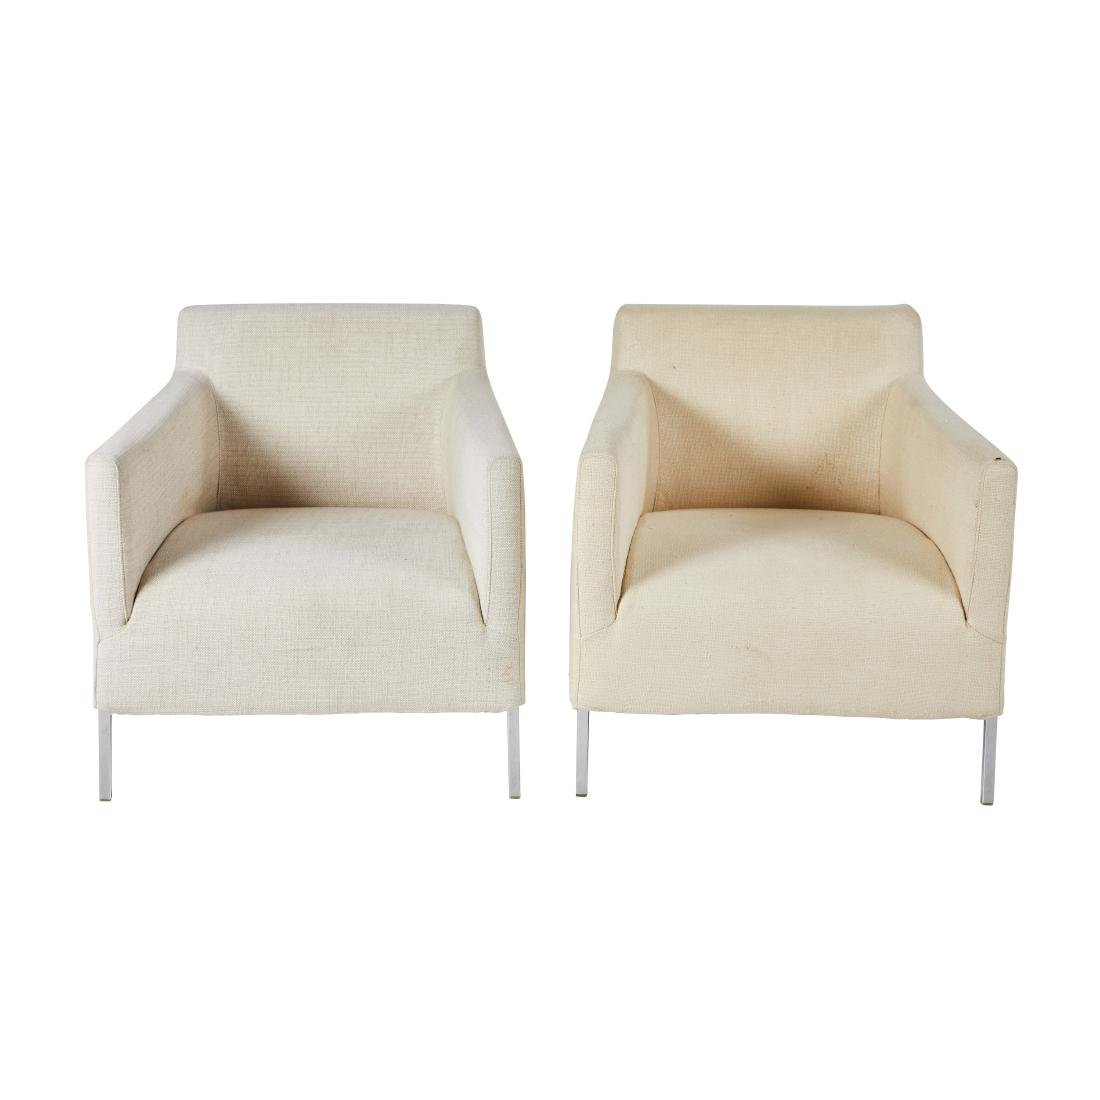 Bb italia furniture prices Canape Bb Italia Lounge Chairs Chaplins Bb Italia Prices 126 Auction Price Results